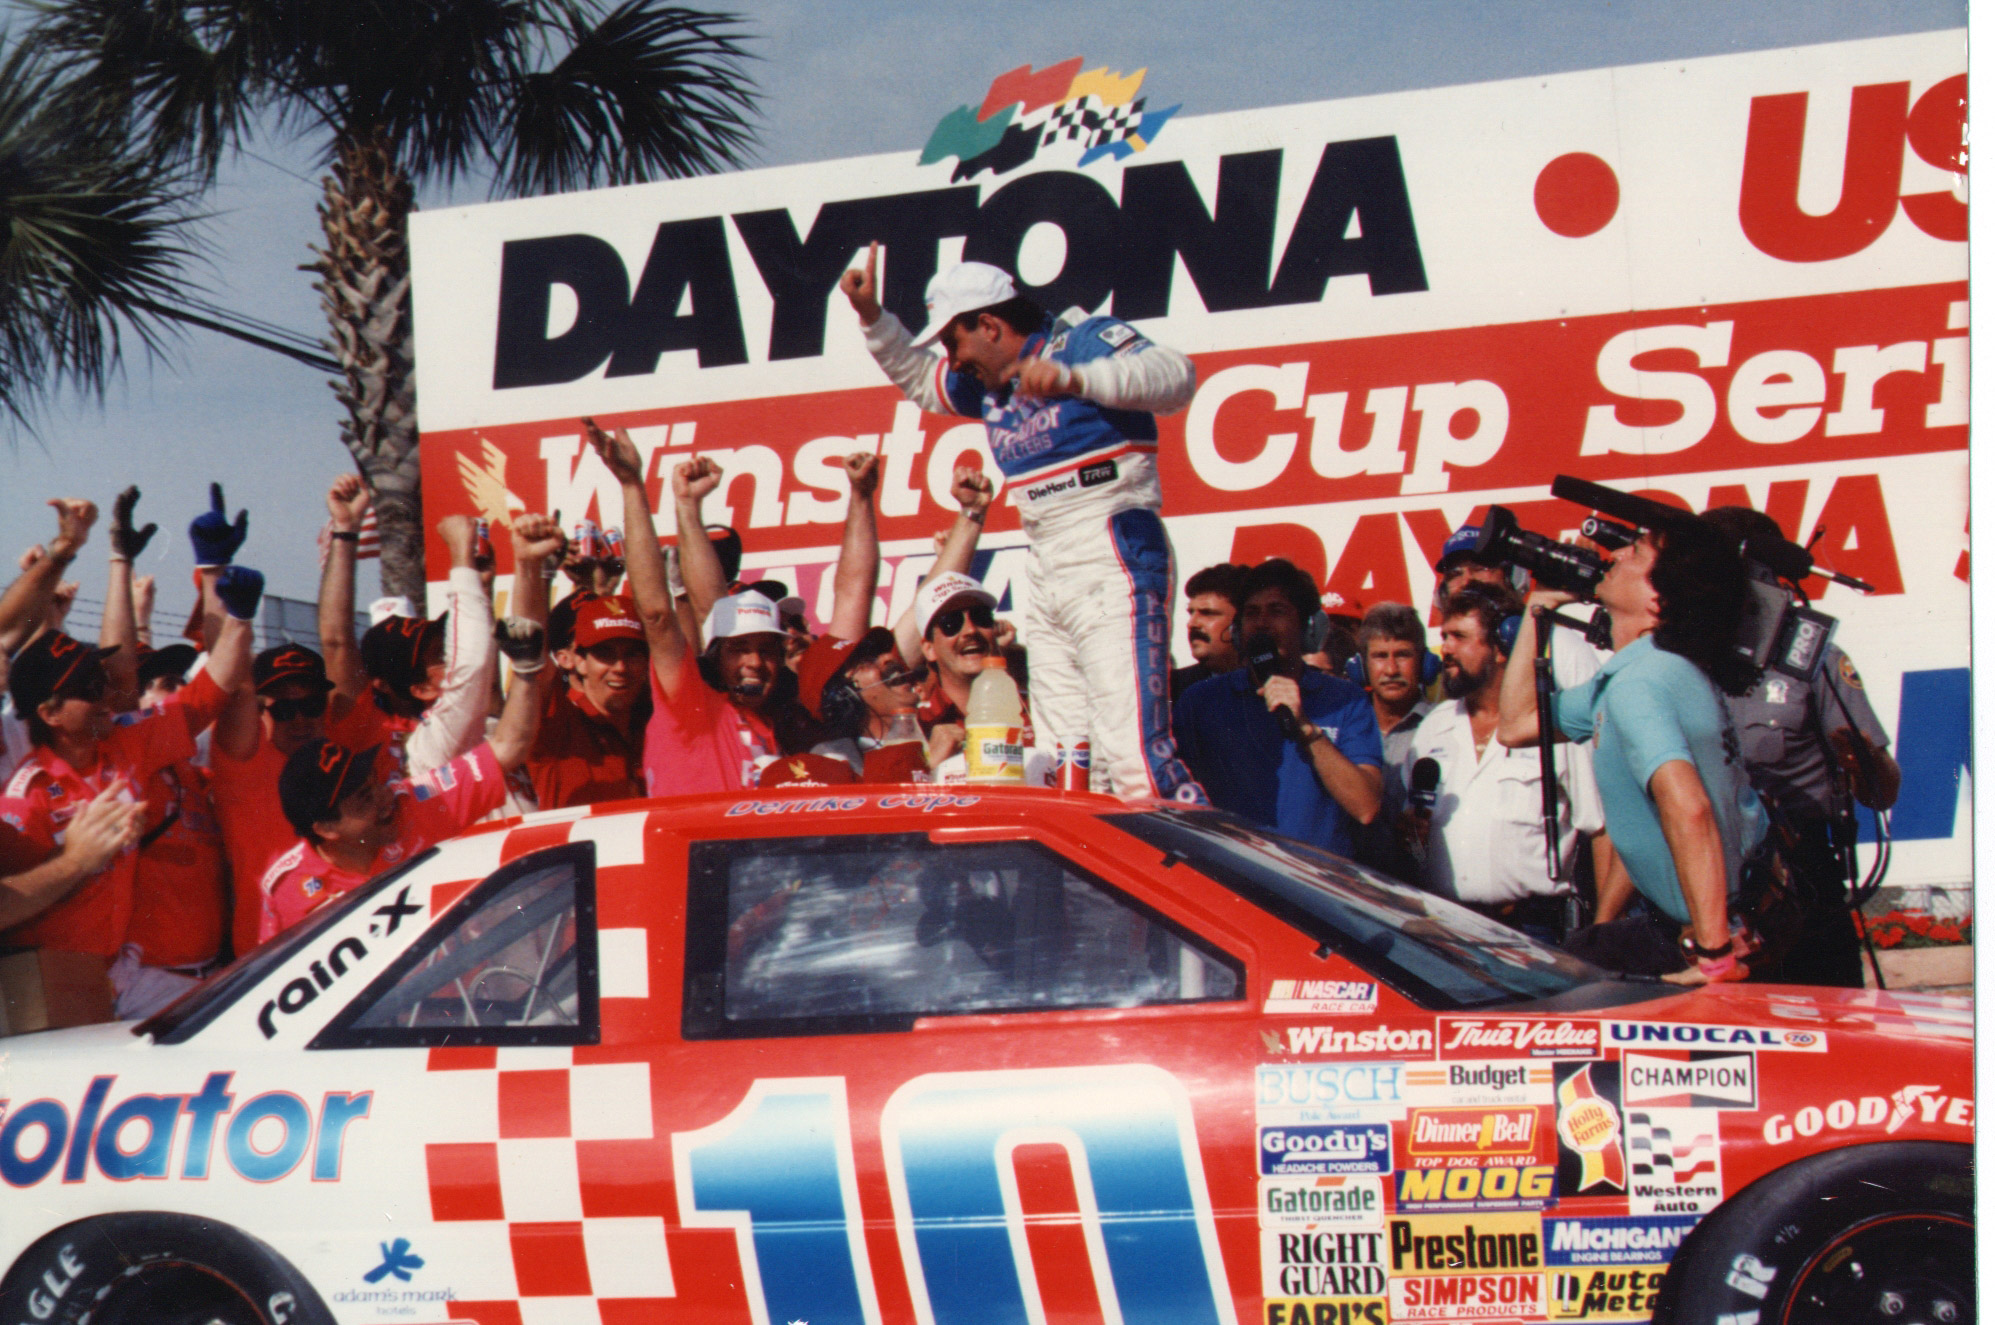 In the early '90s Automotive Specialists' intake work was sought after at the highest levels of American motorsports. In 1990, Dorton's company supplied 20-plus NASCAR Winston Cup cars intakes for the Daytona 500, including winner Derrick Cope.